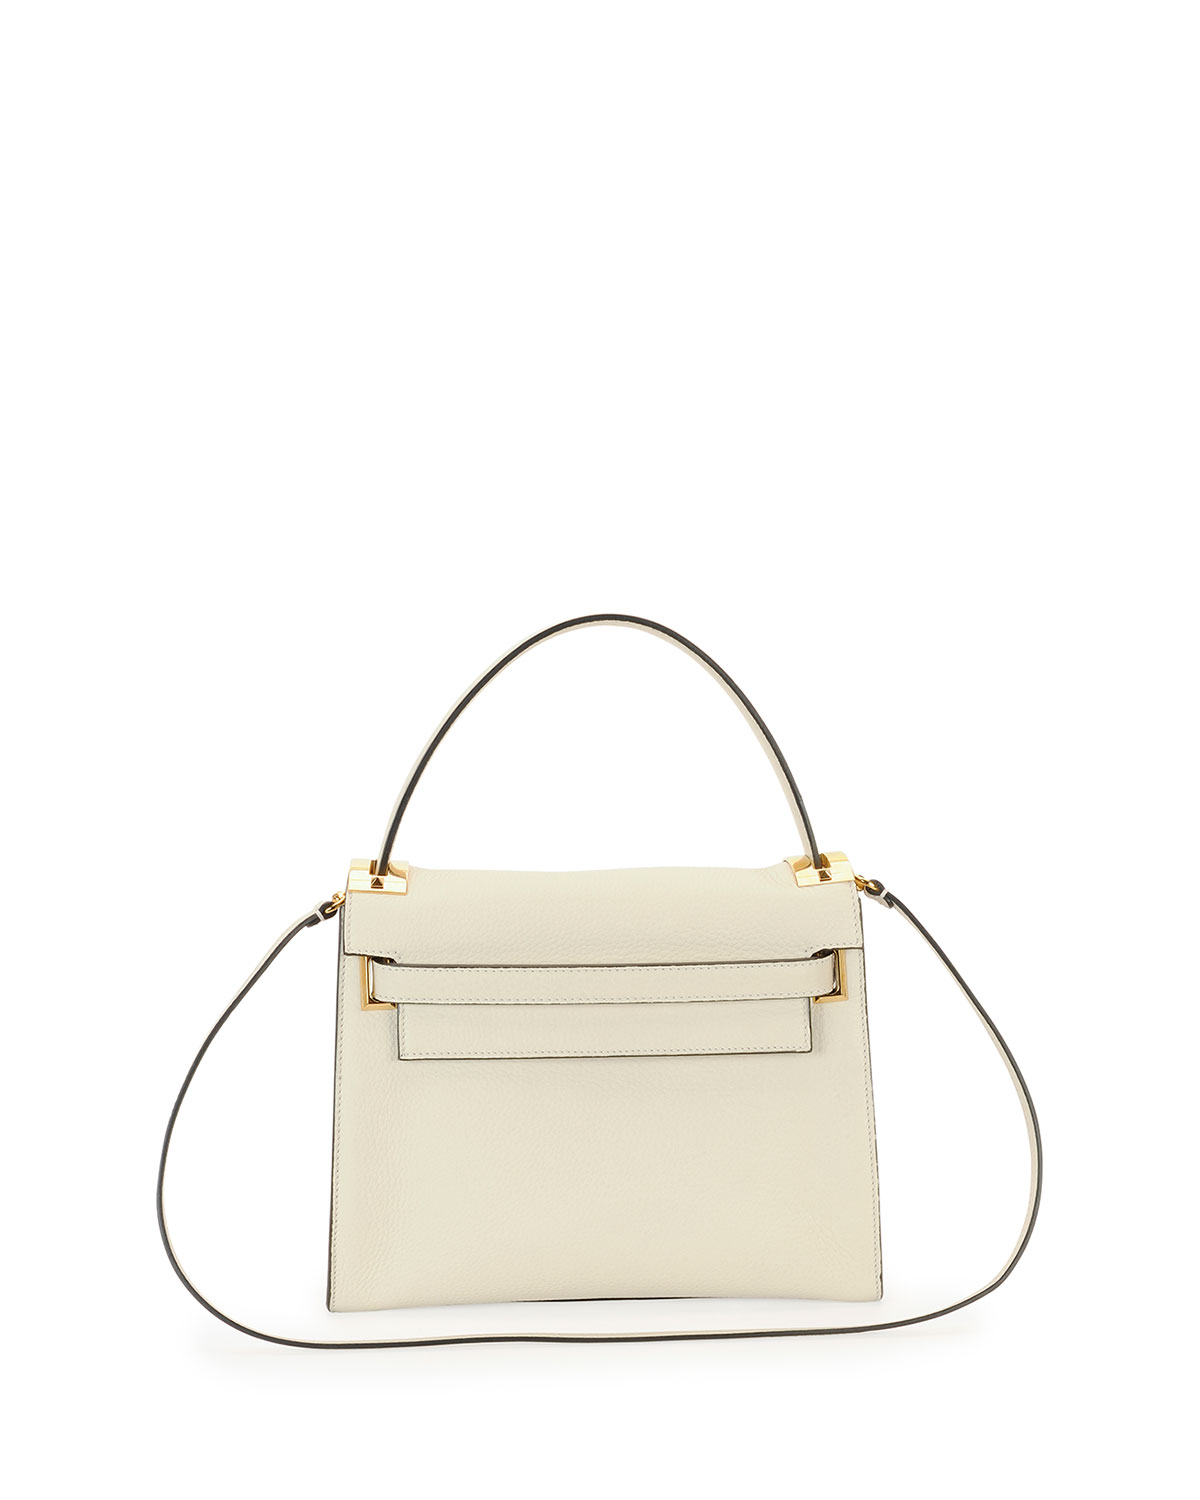 Red Valentino My Rockstud Top-Handle Satchel Bag, Light Ivory